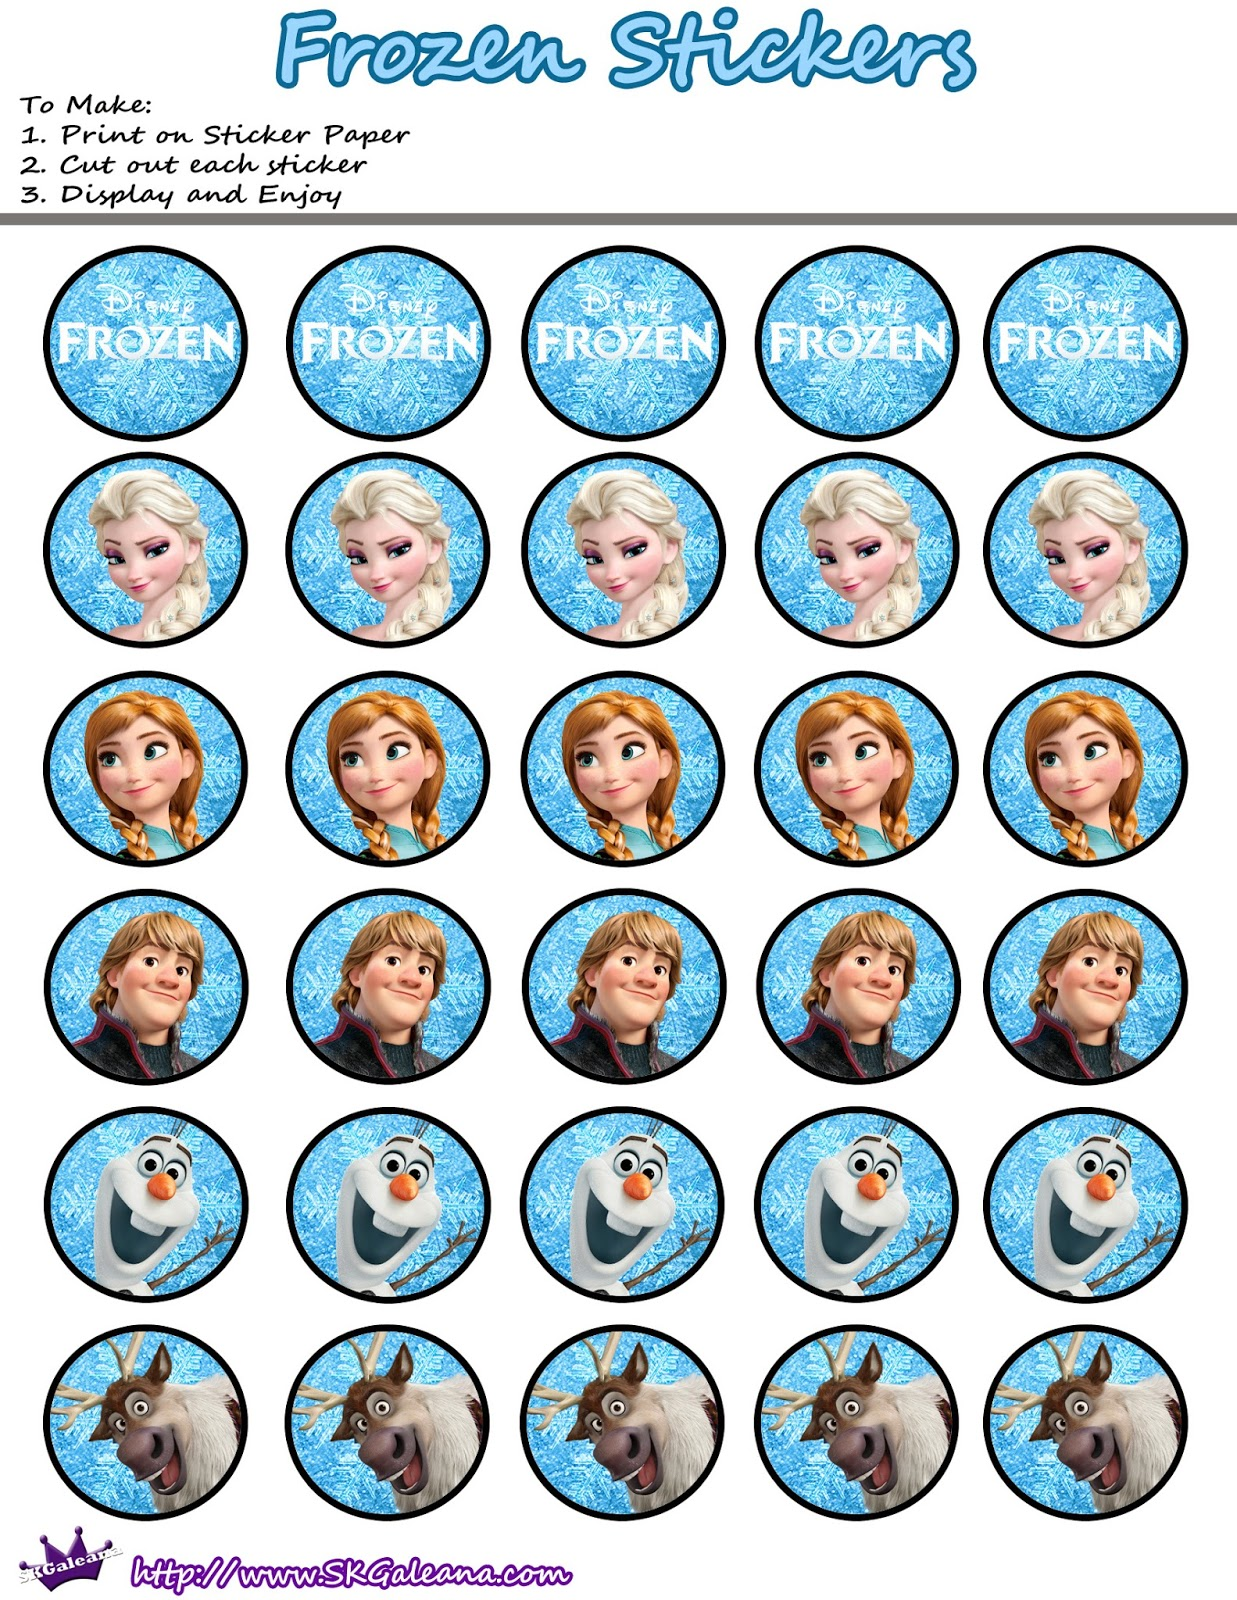 7 Images of Printable Stickers Frozen